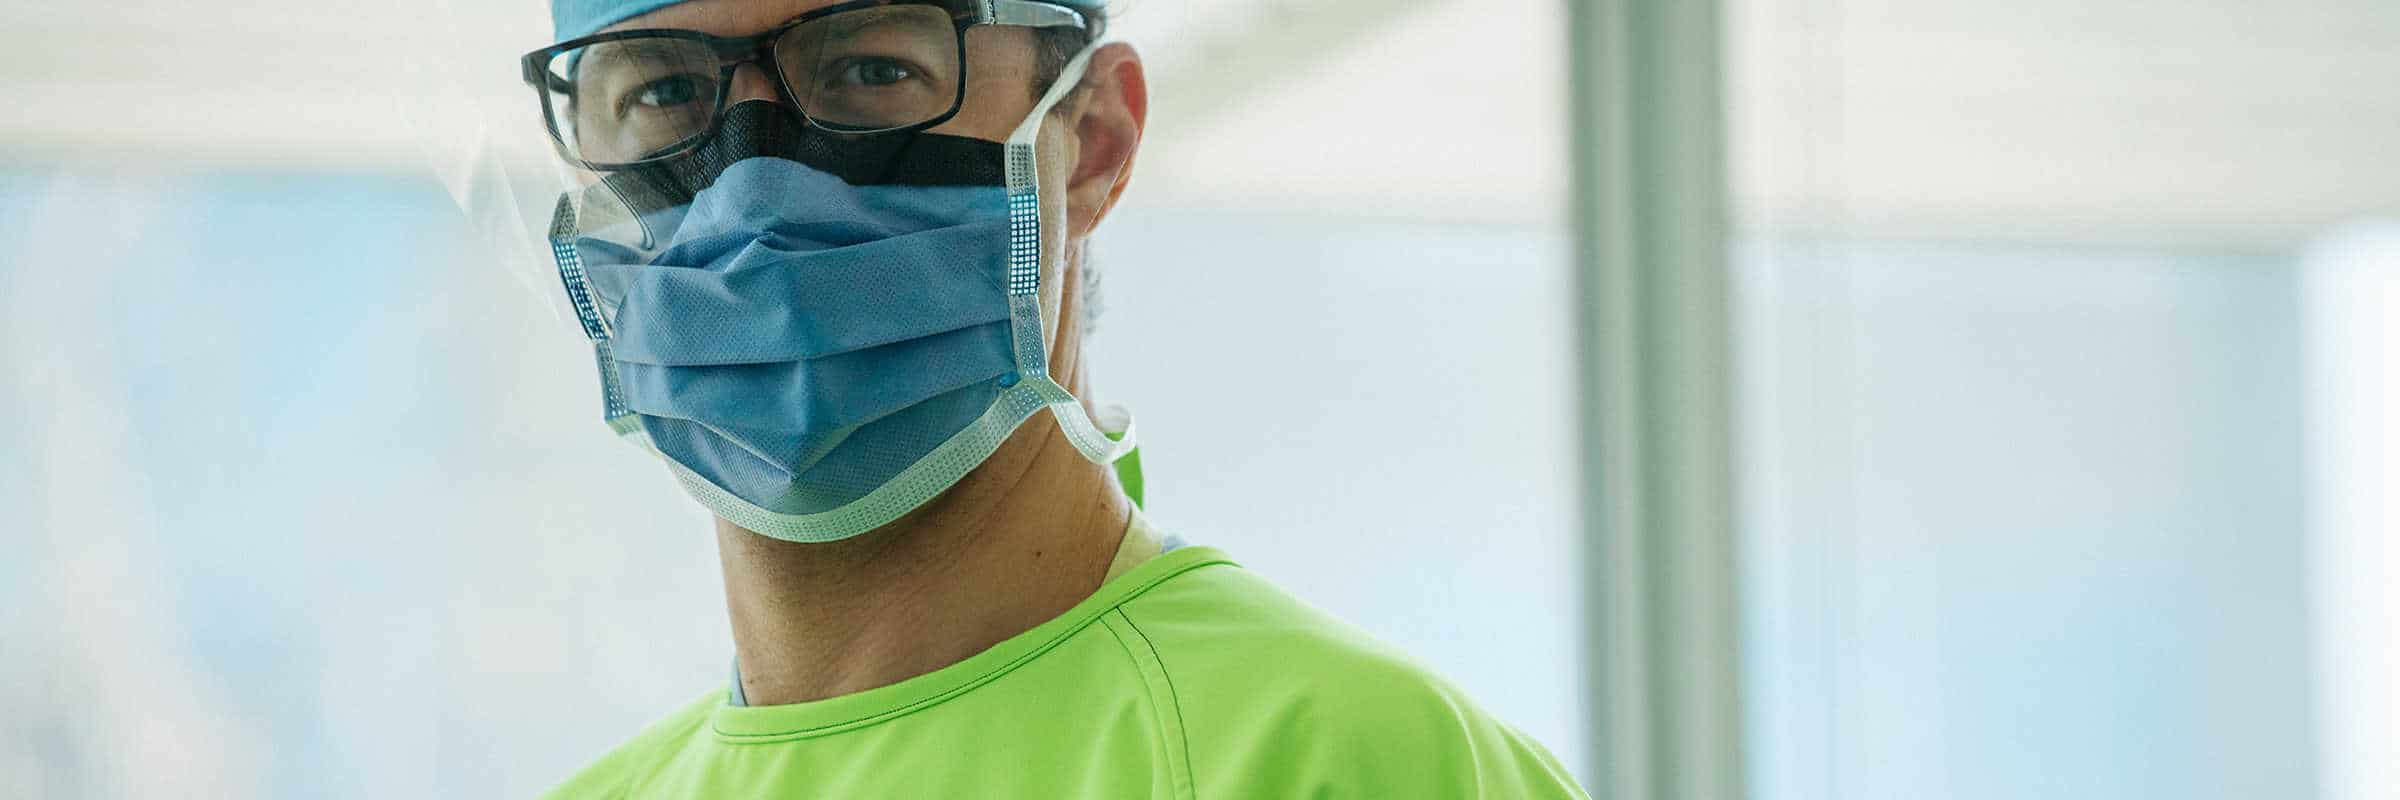 Arc'teryx: from Outdoor Gear to Medical Gowns